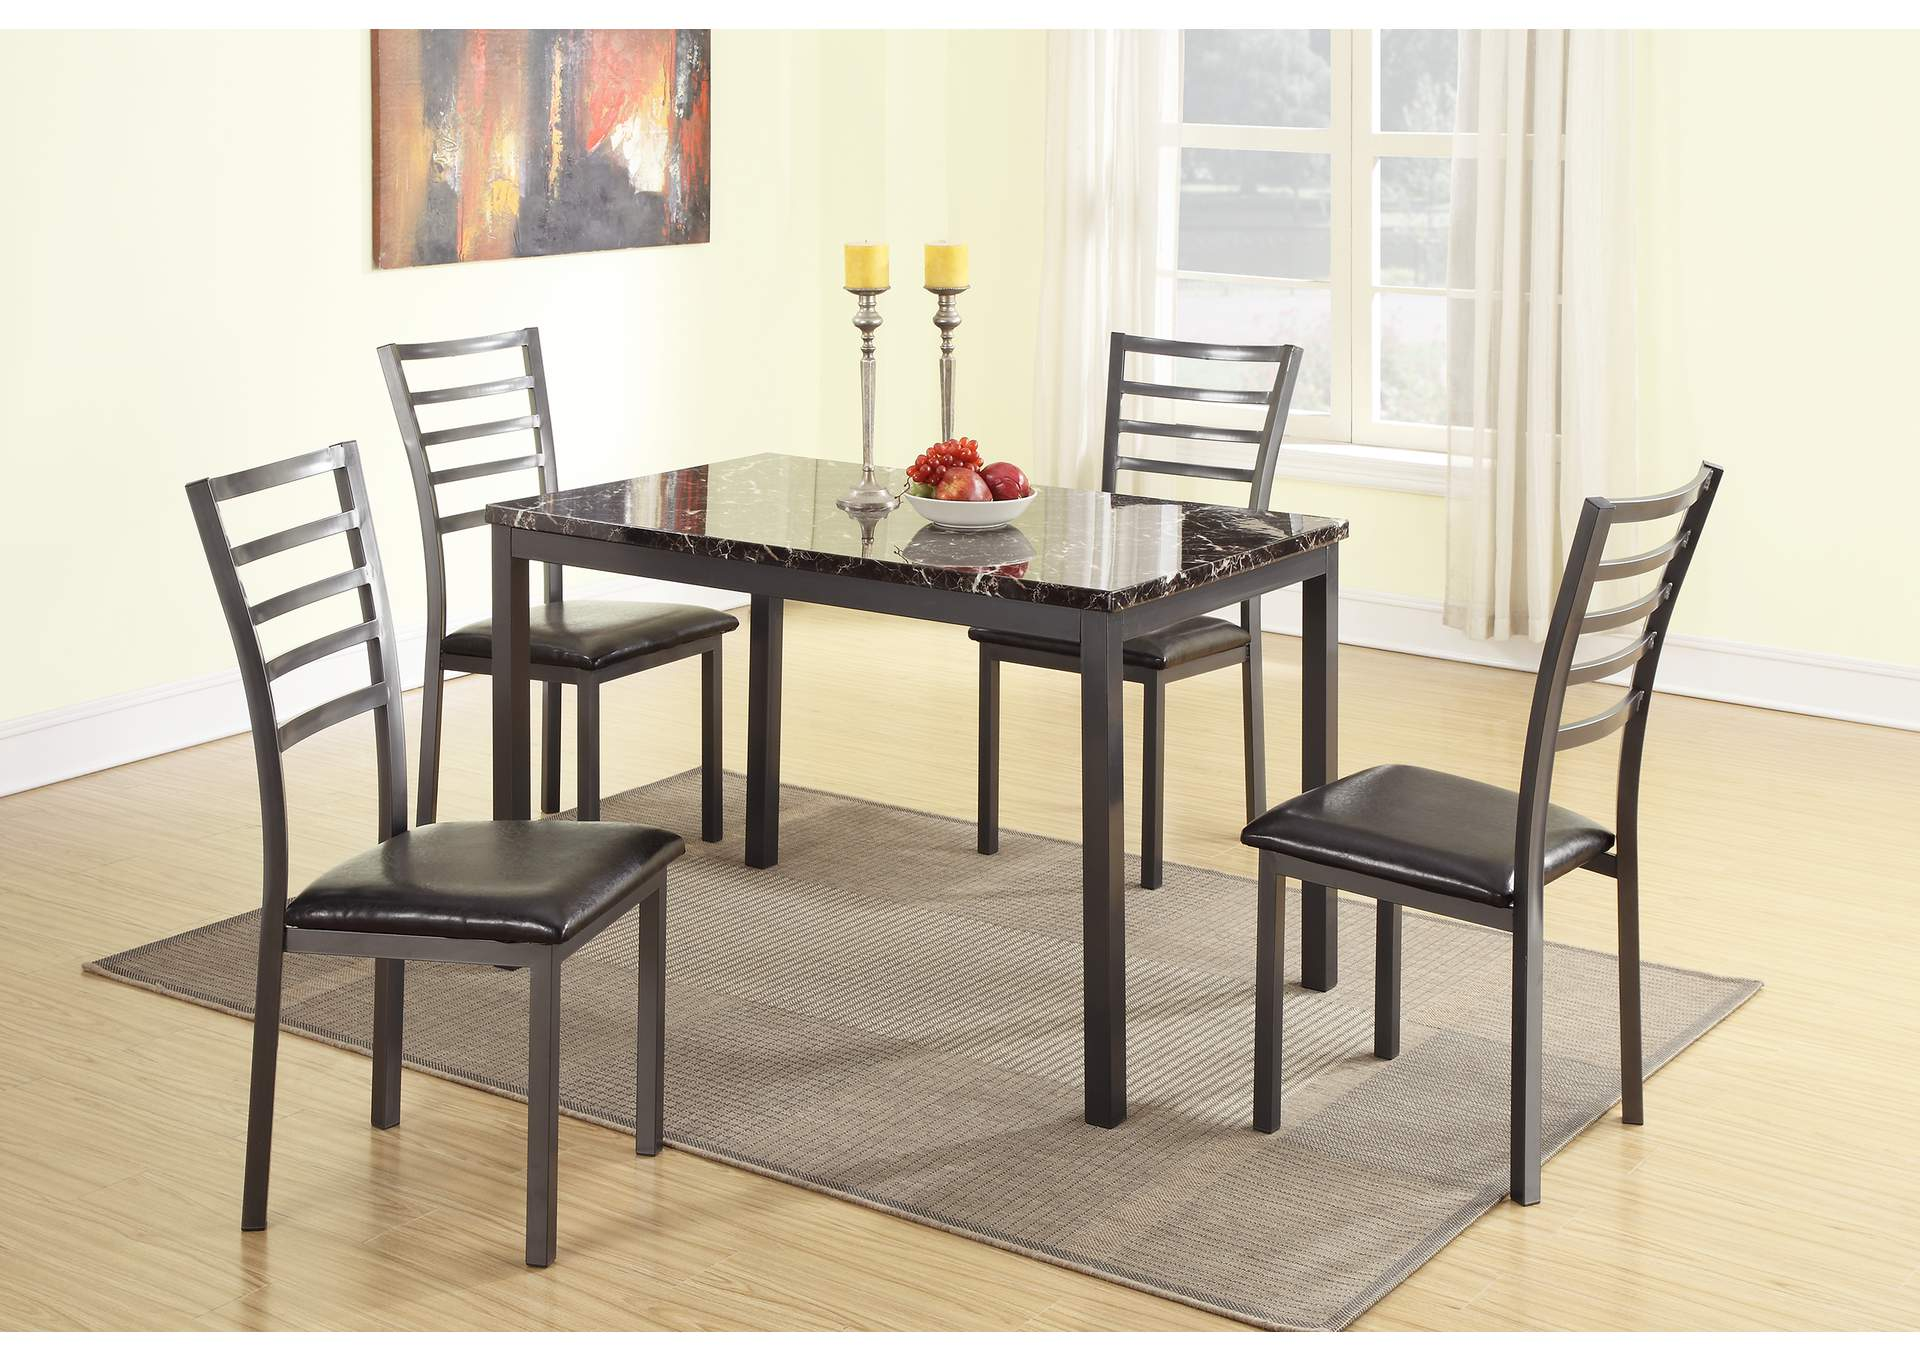 Black Metal 5 PC Dining Set,Poundex